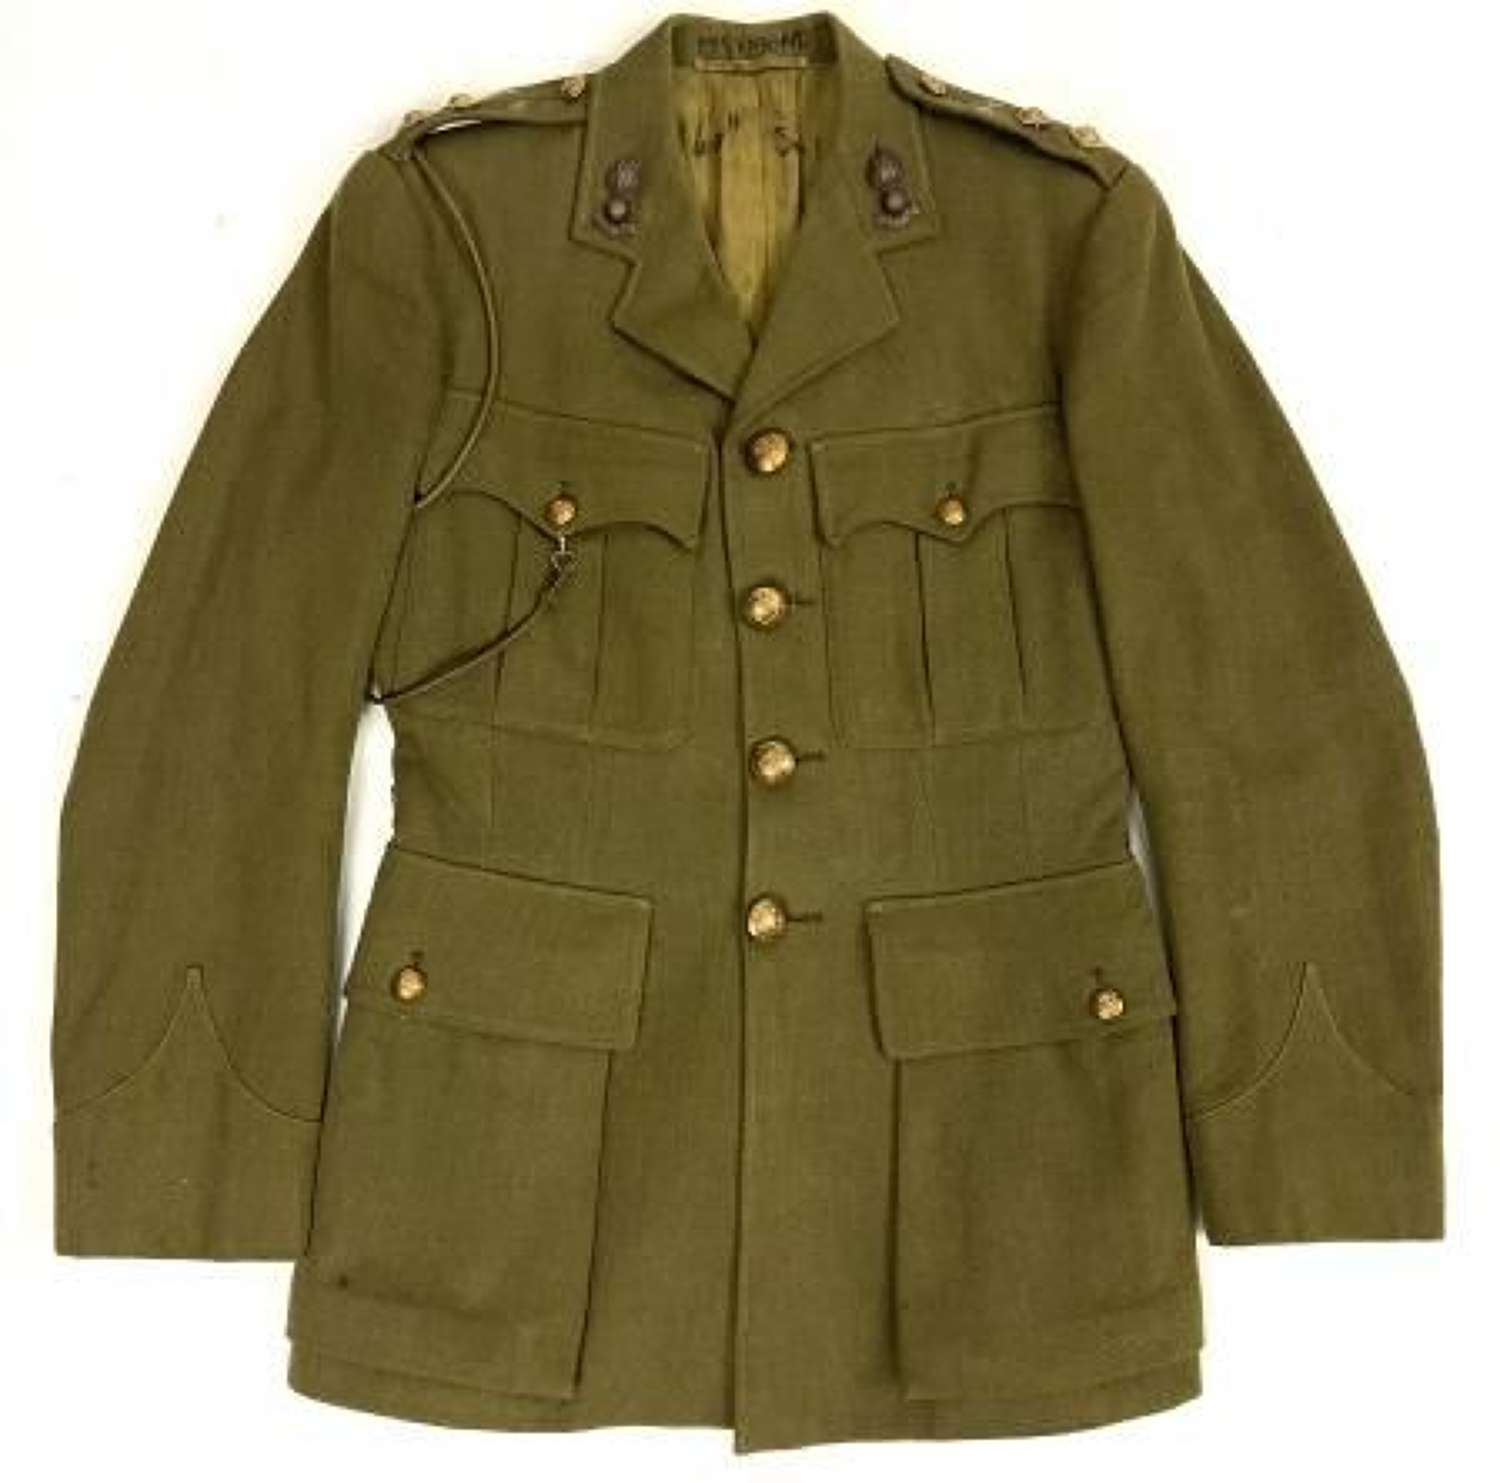 Original WW2 Royal Engineers Officers Service Dress Tunic